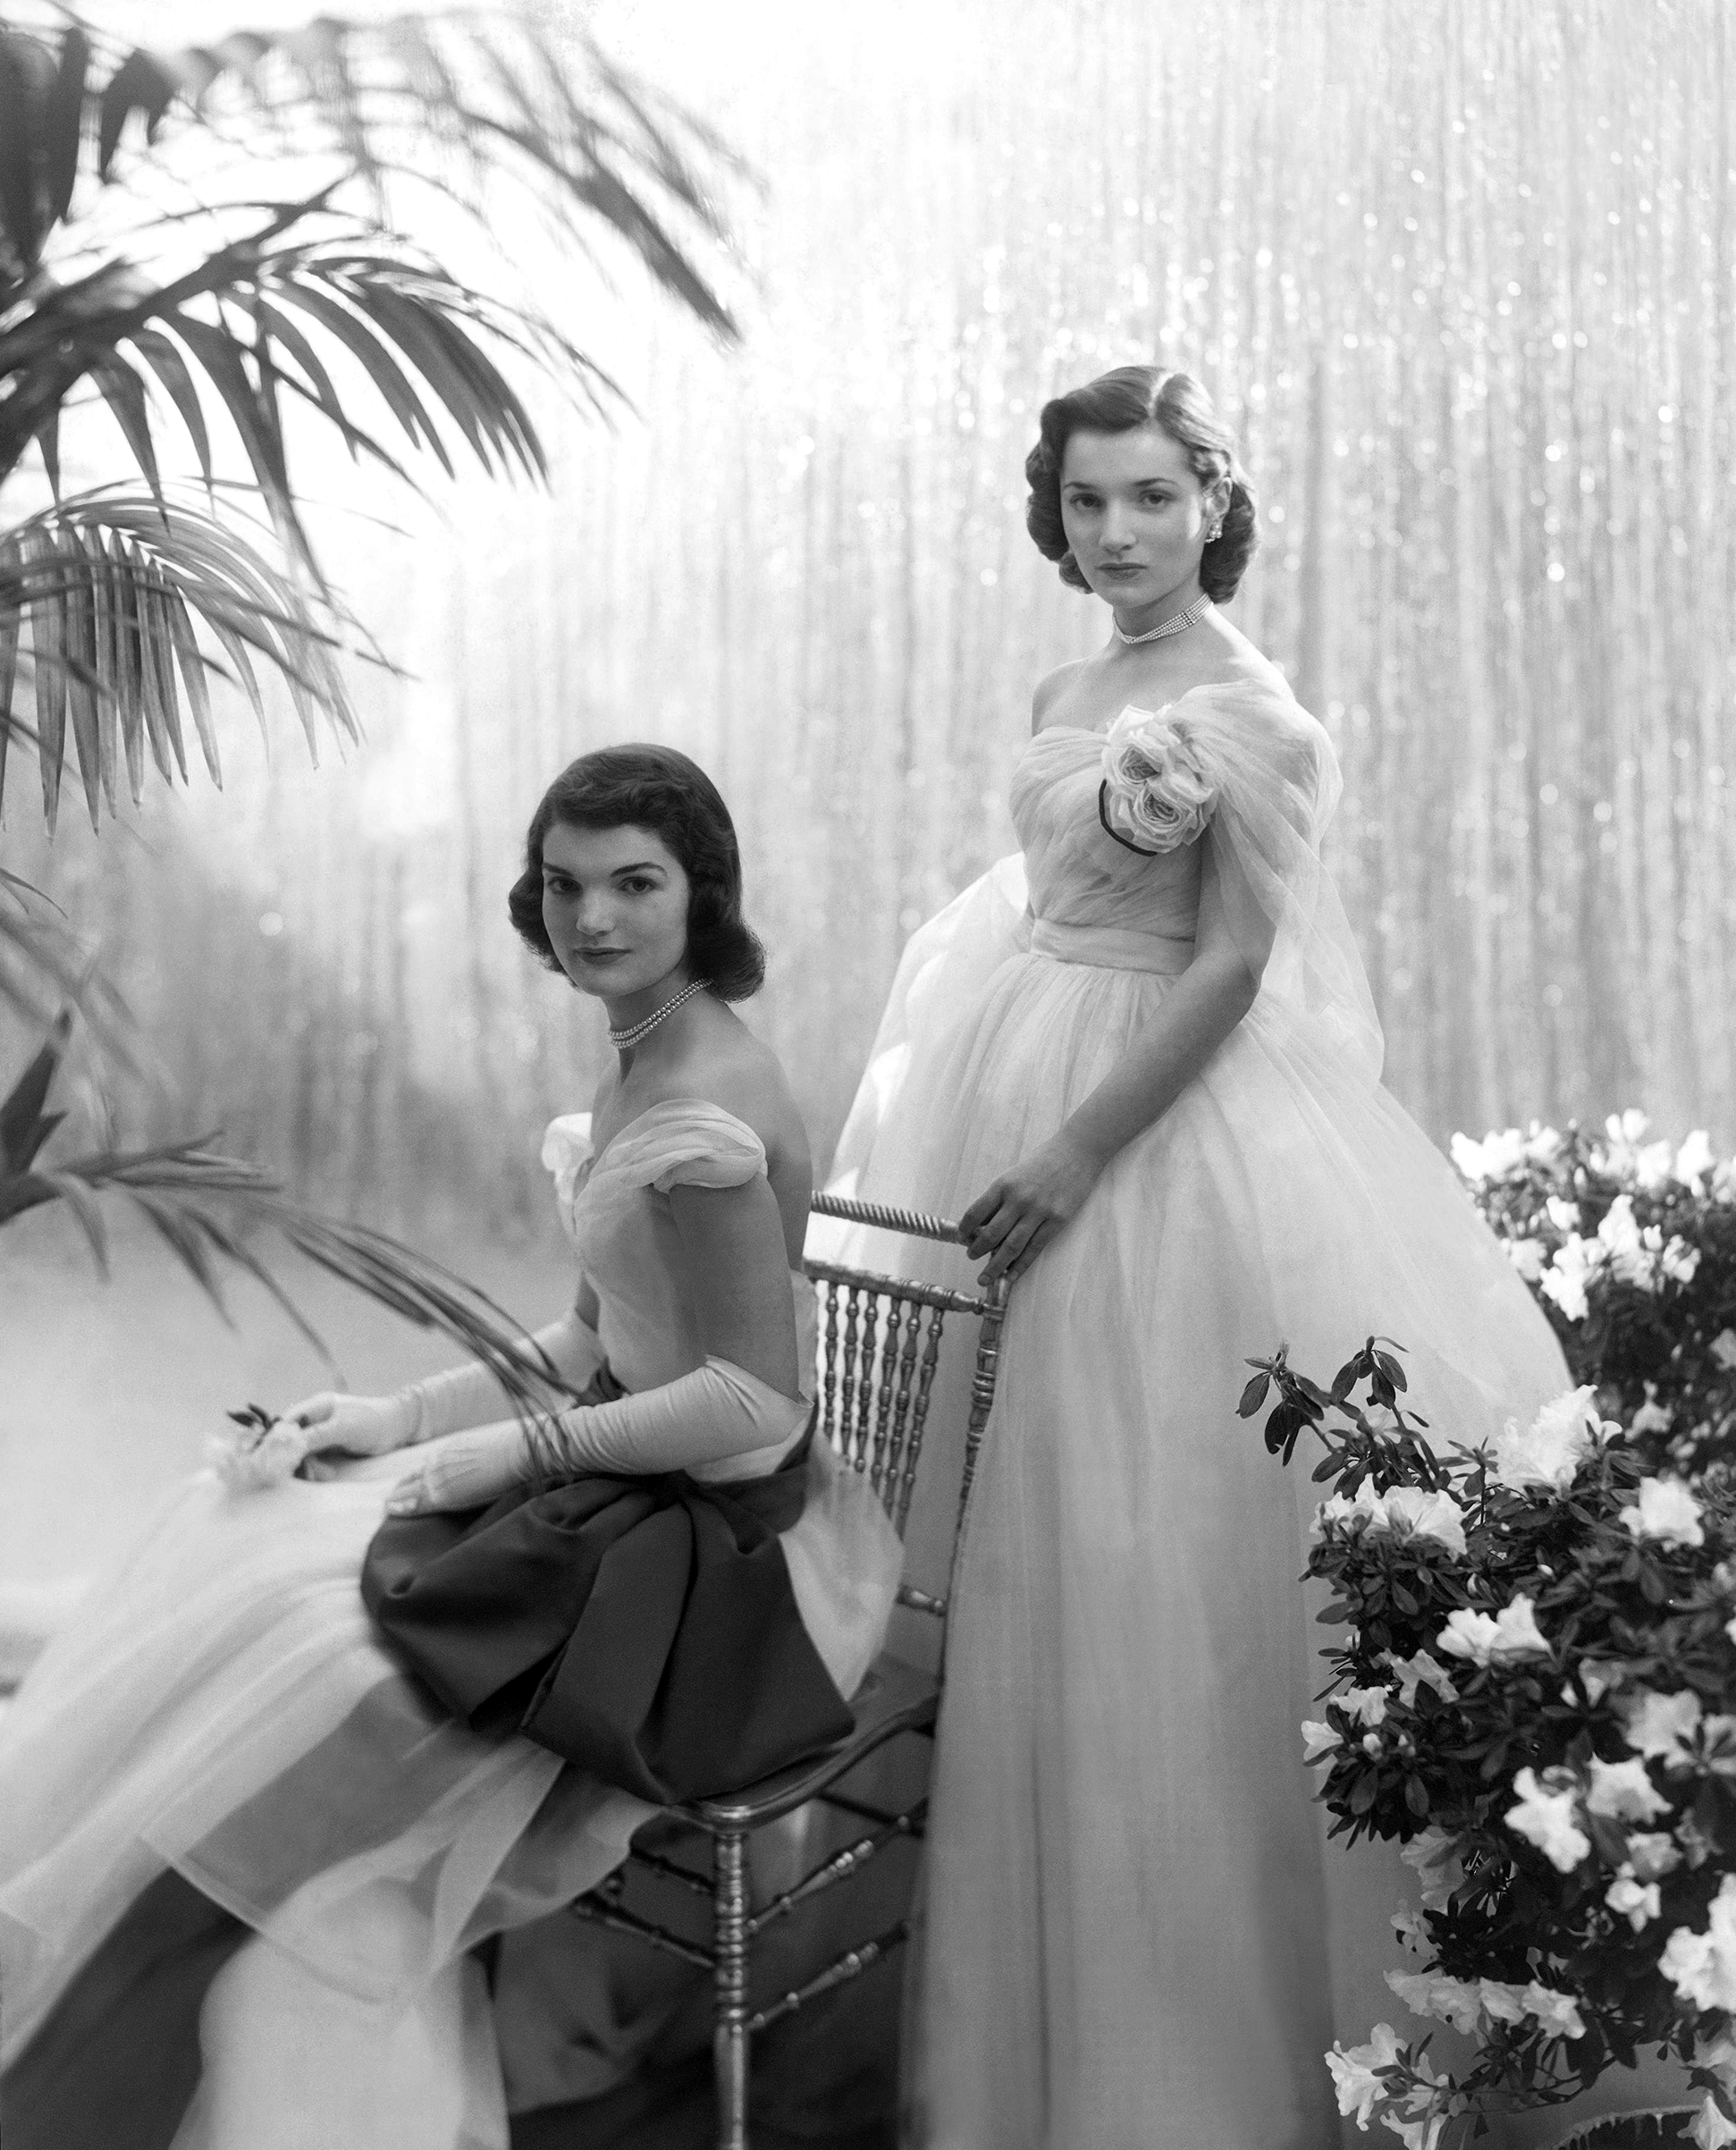 Jacqueline Bouvier (later Jacqueline Kennedy Onassis), seated, with her sister Caroline Lee Bouvier, standing behind her, wearing ball gowns, 1951.